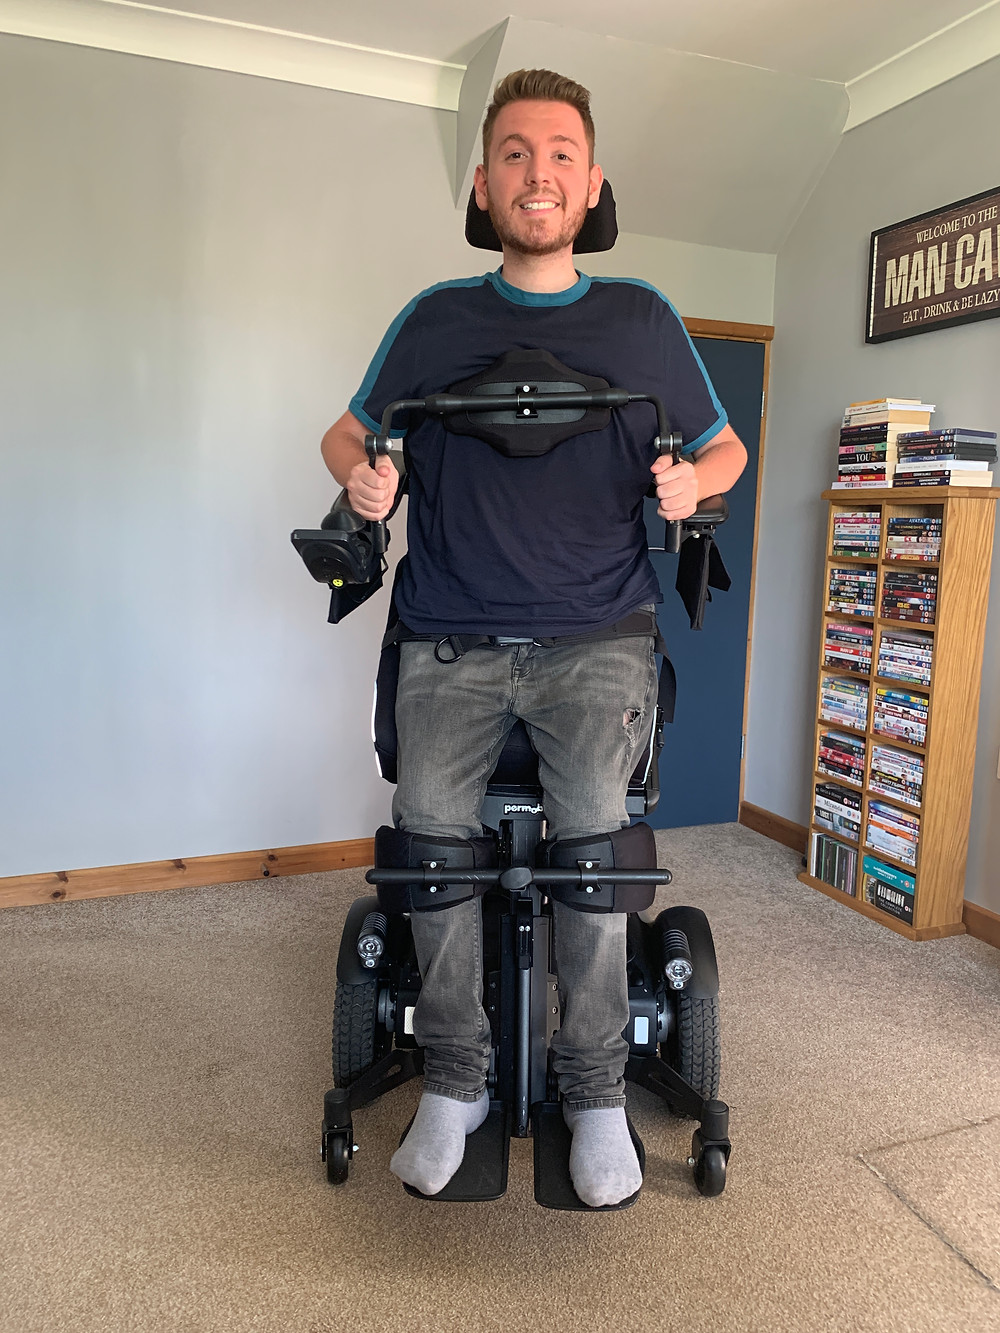 Ross stood in the f5 vs power chair